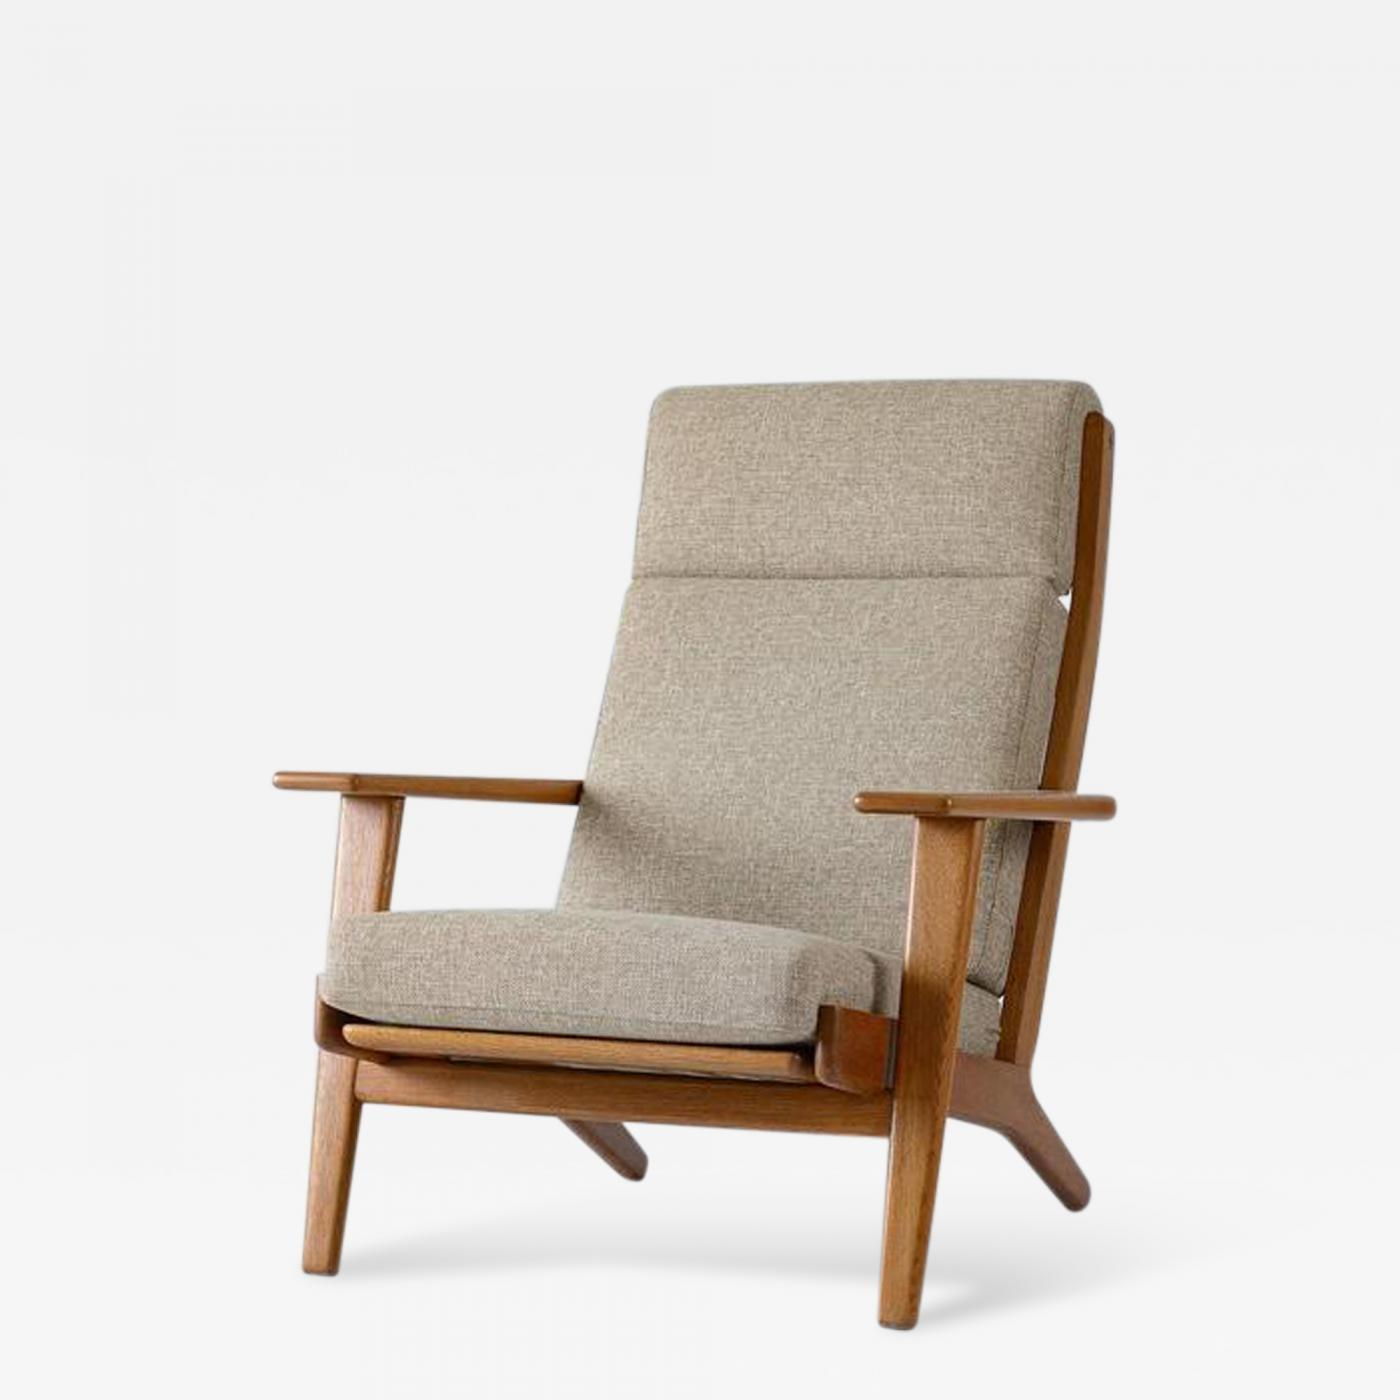 Charmant Listings / Furniture / Seating / Armchairs · Hans Wegner Hans Wegner GE 290 High  Back Lounge Chair